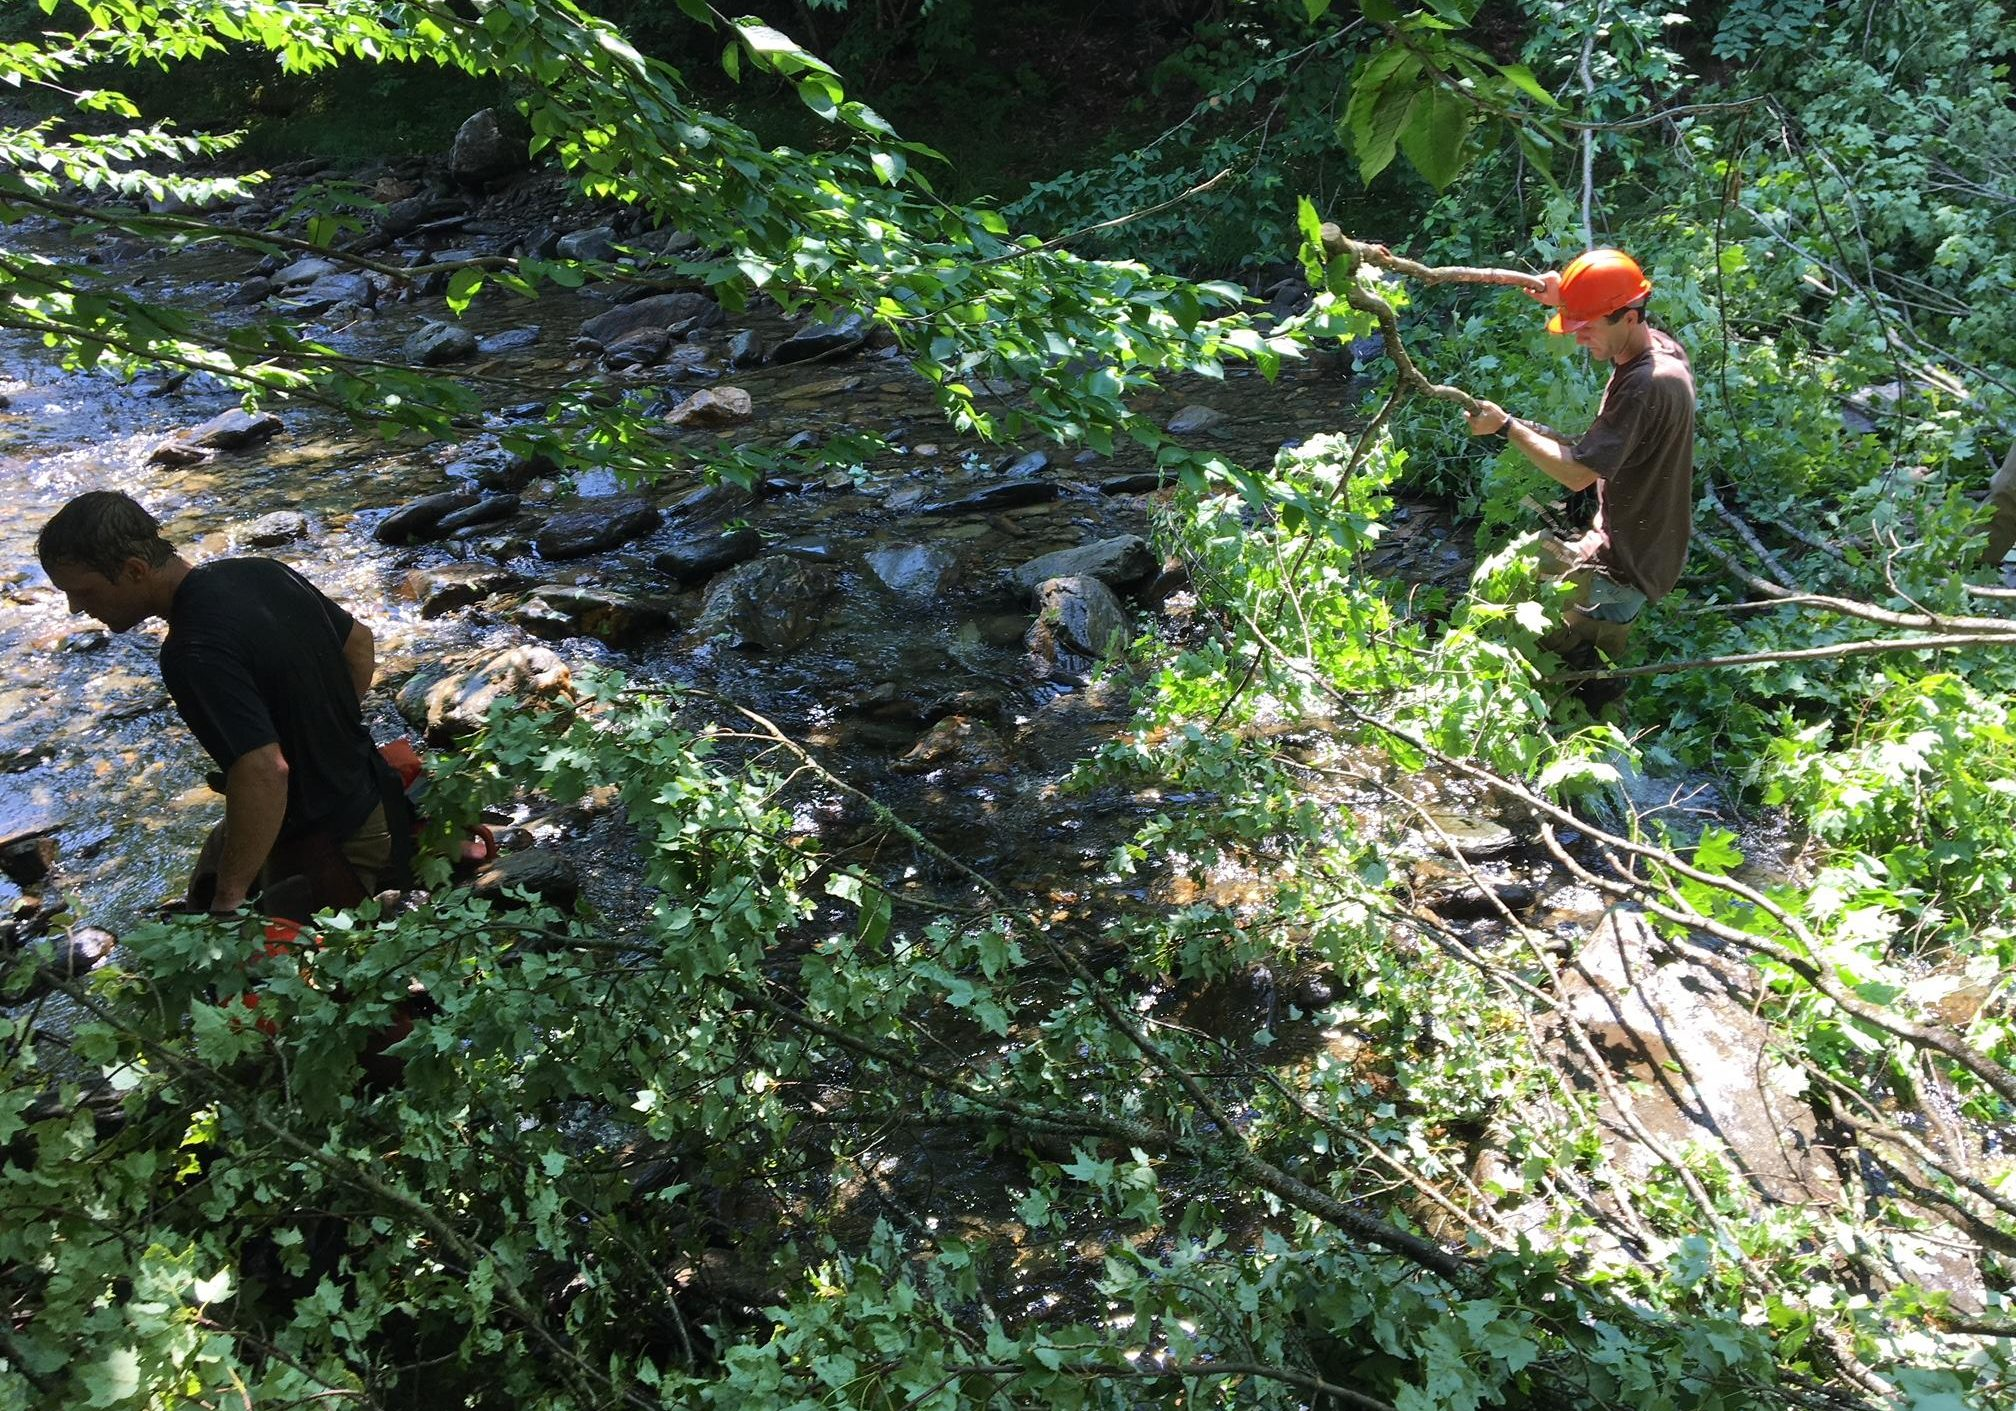 To improve habitat on Calavale Brook, first you have to drop some trees in the stream. Photo by John Dillon for VPR